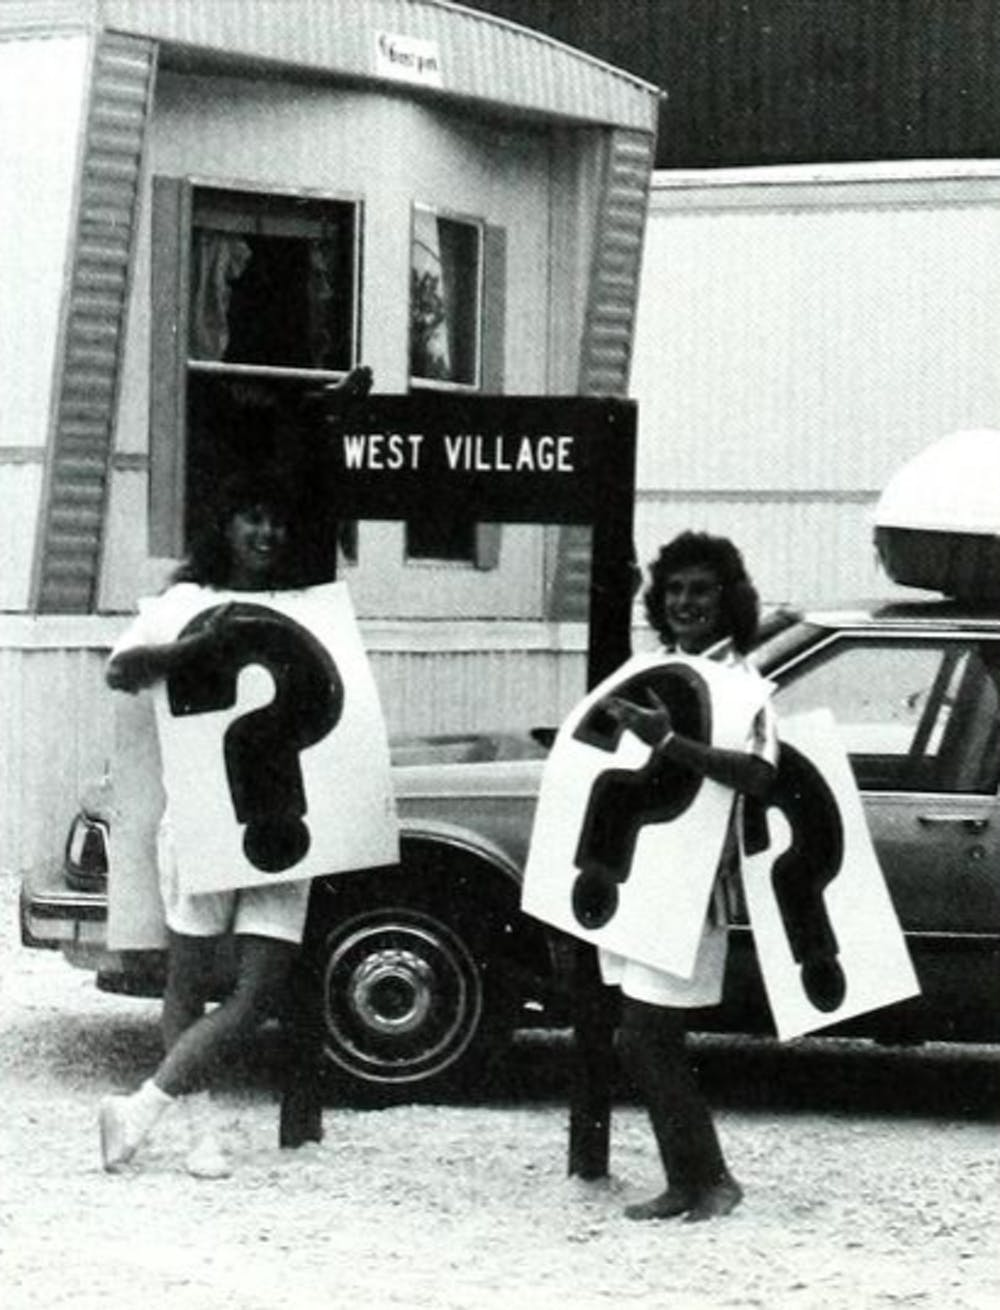 Taylor remembers the legacy of West Village 30 years later